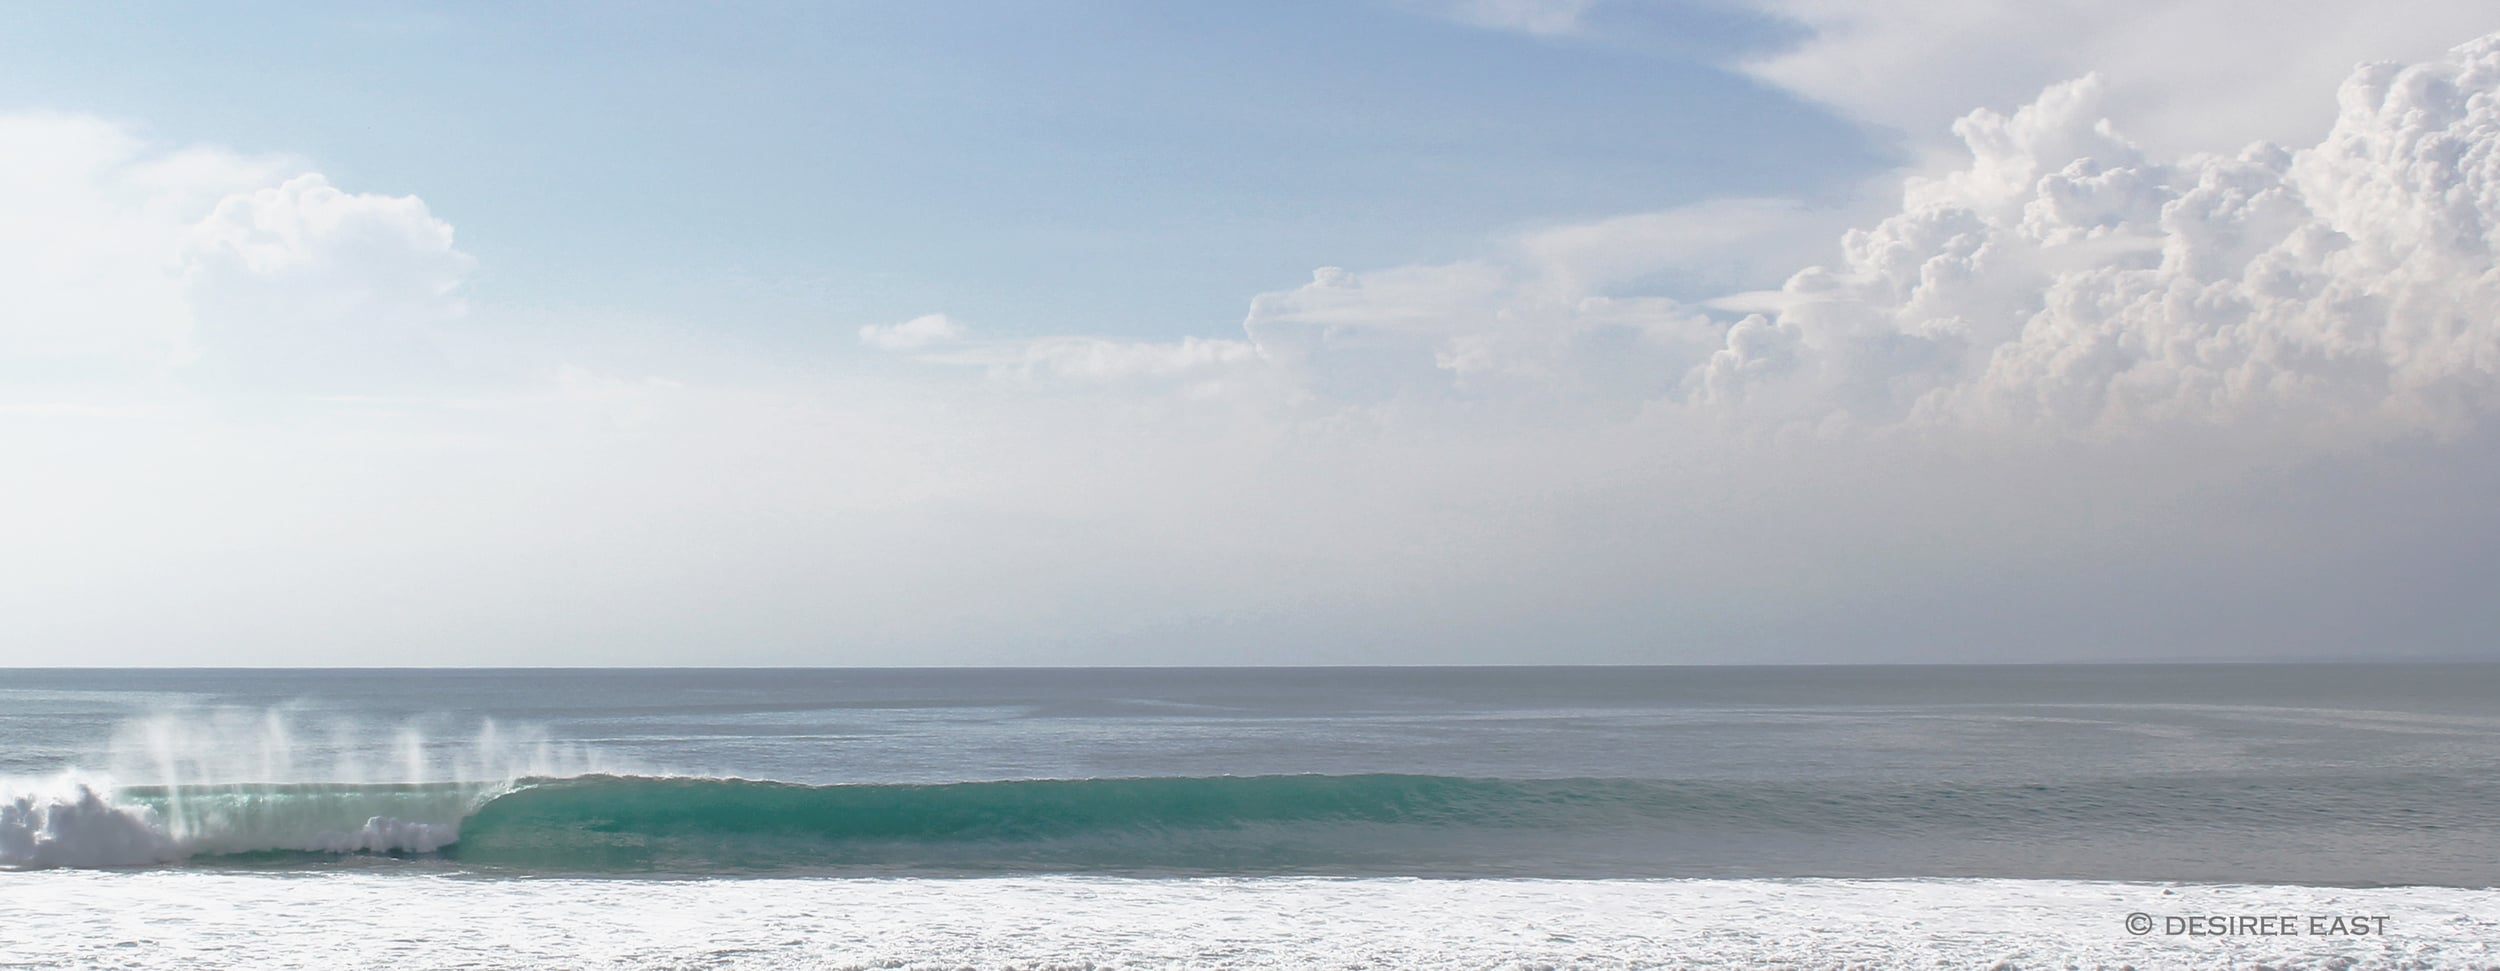 simplicity. bali, indonesia. photo by desiree east